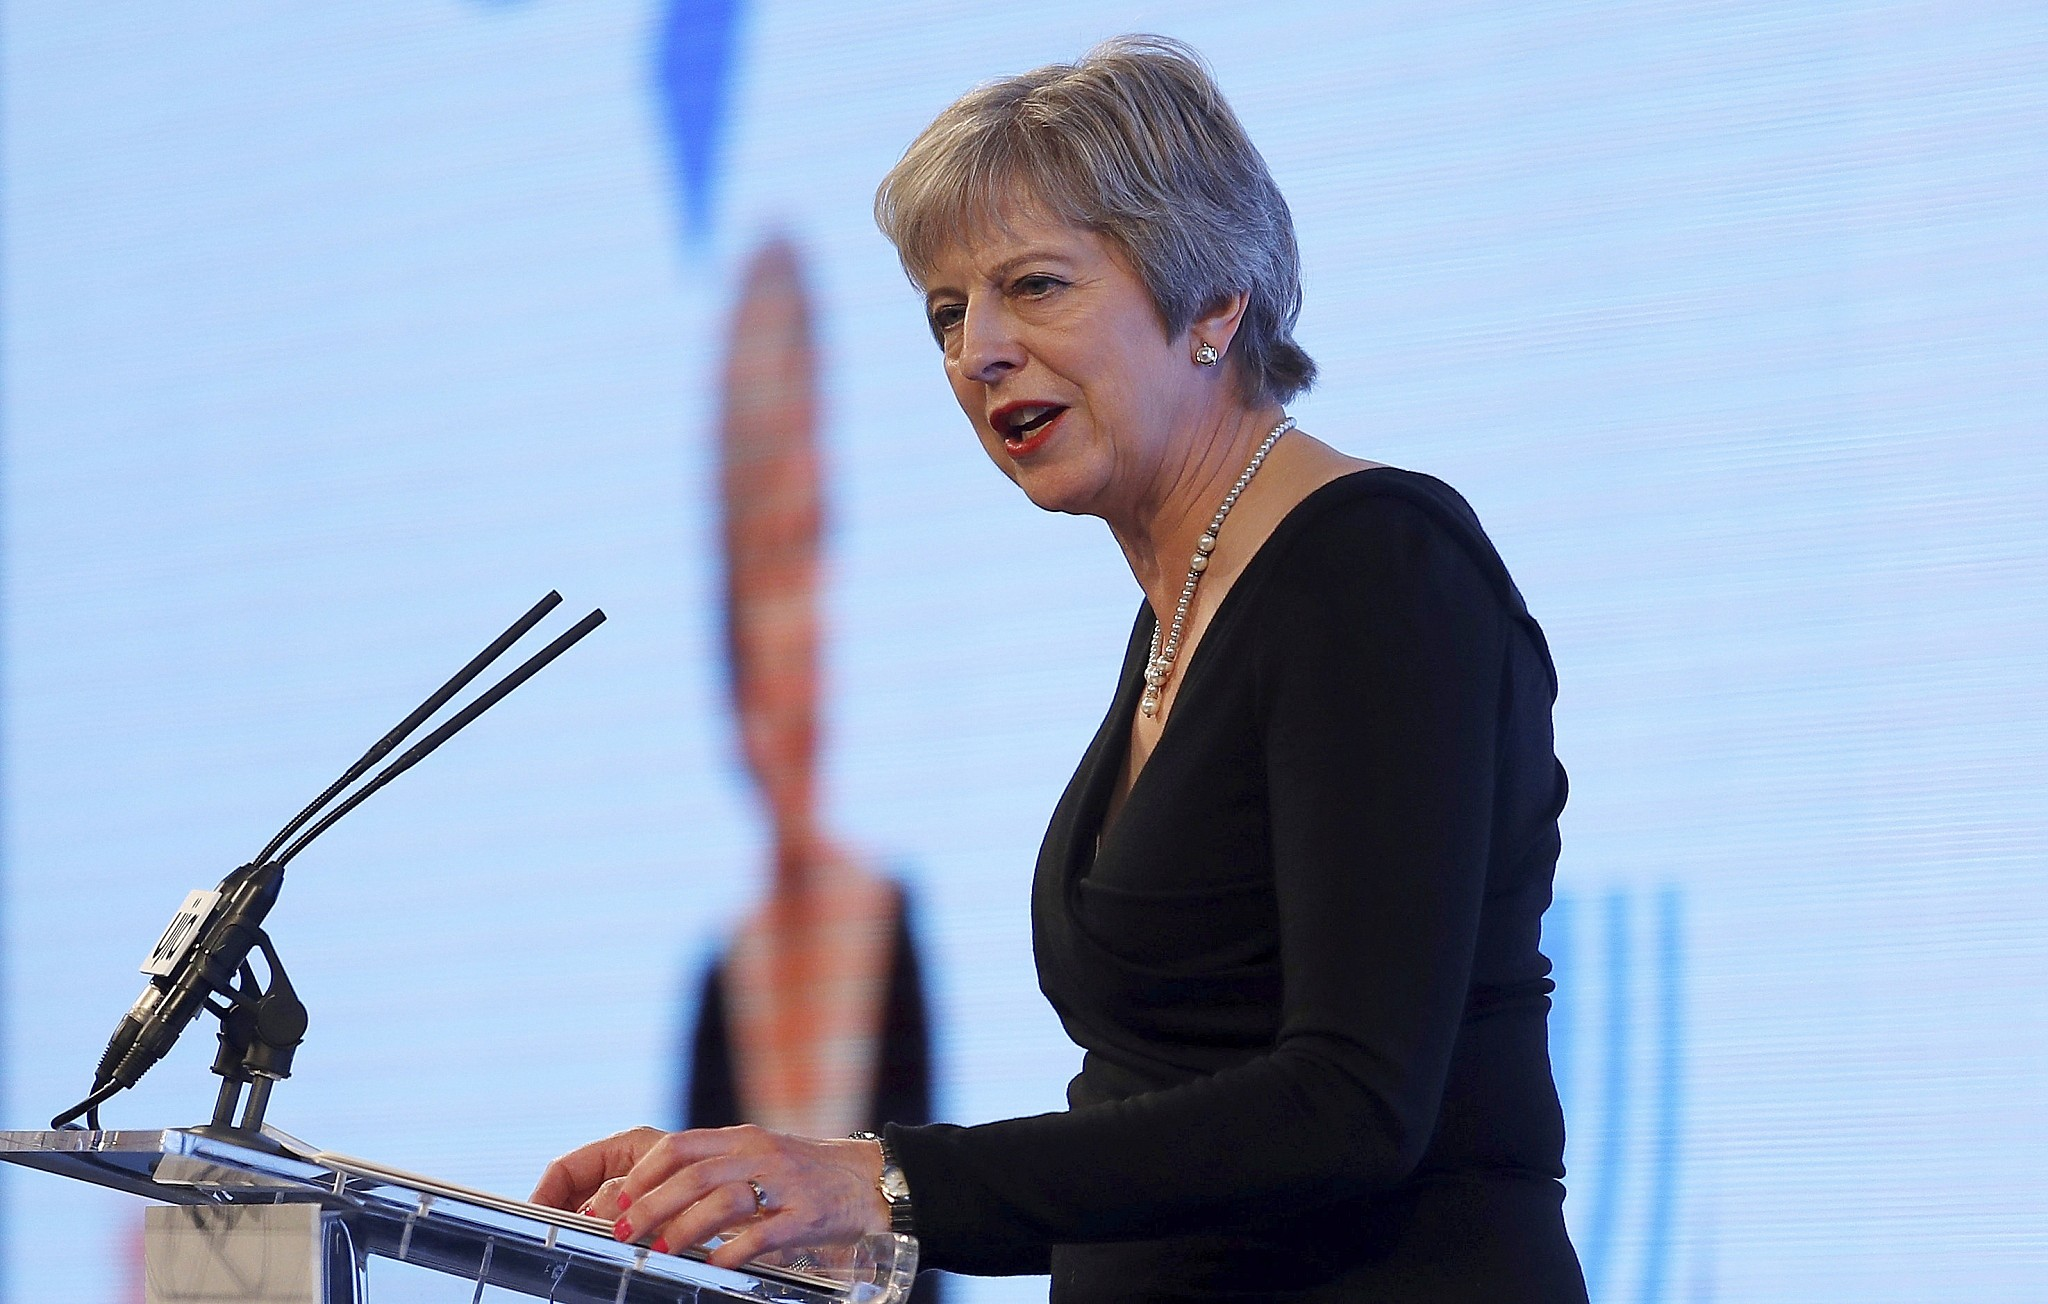 Theresa May Stands with Israel: Warns No Excuse for Anti-Semitism or Boycotts